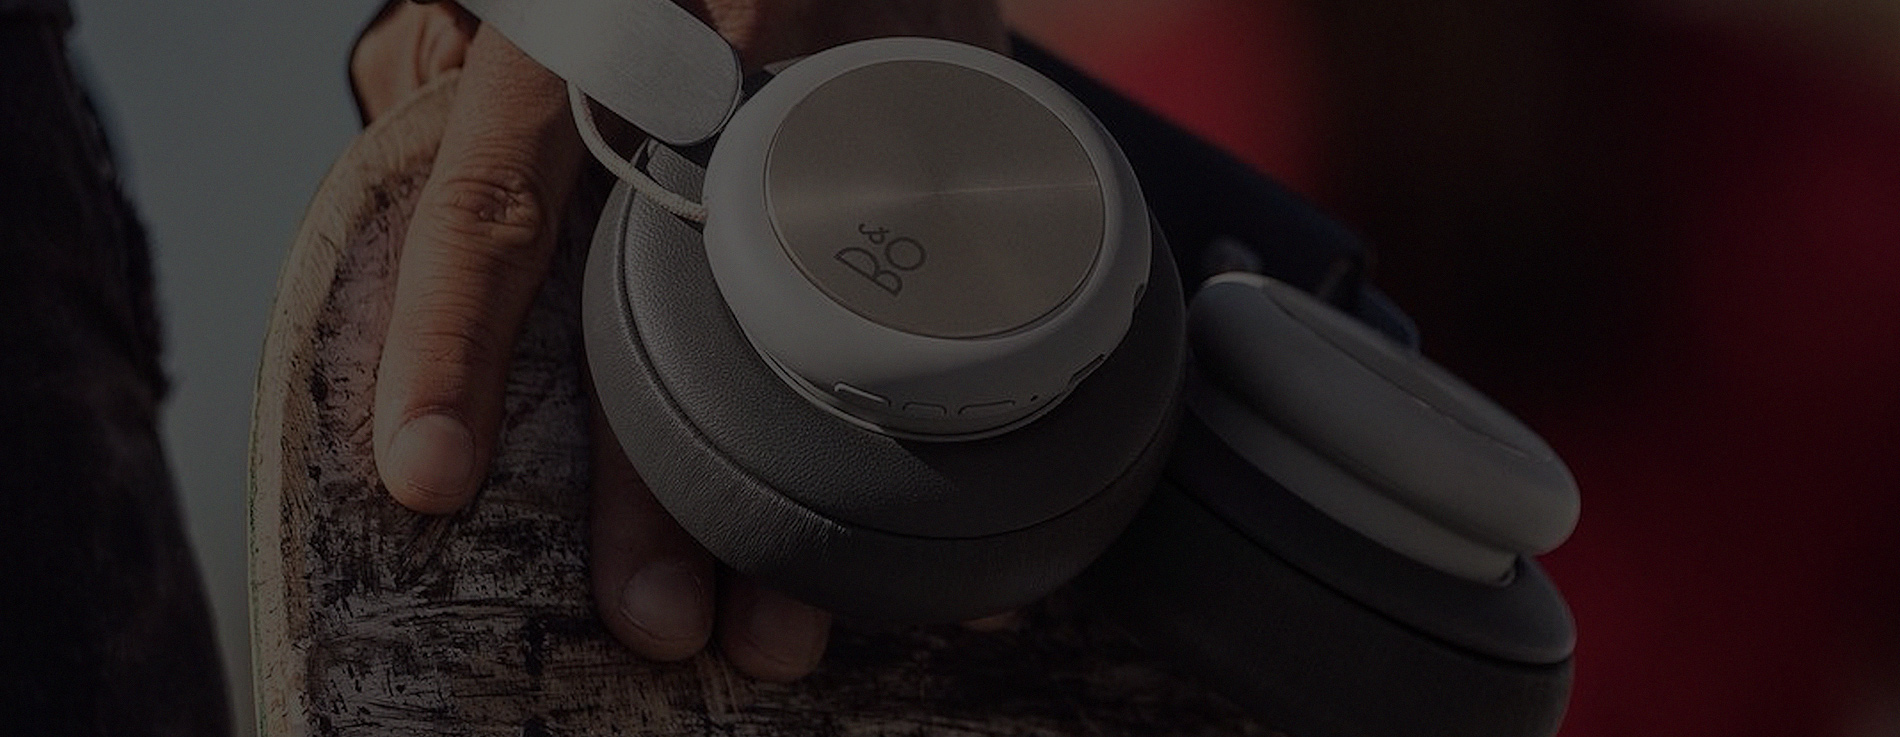 Beoplay H4 - UNFILTERED